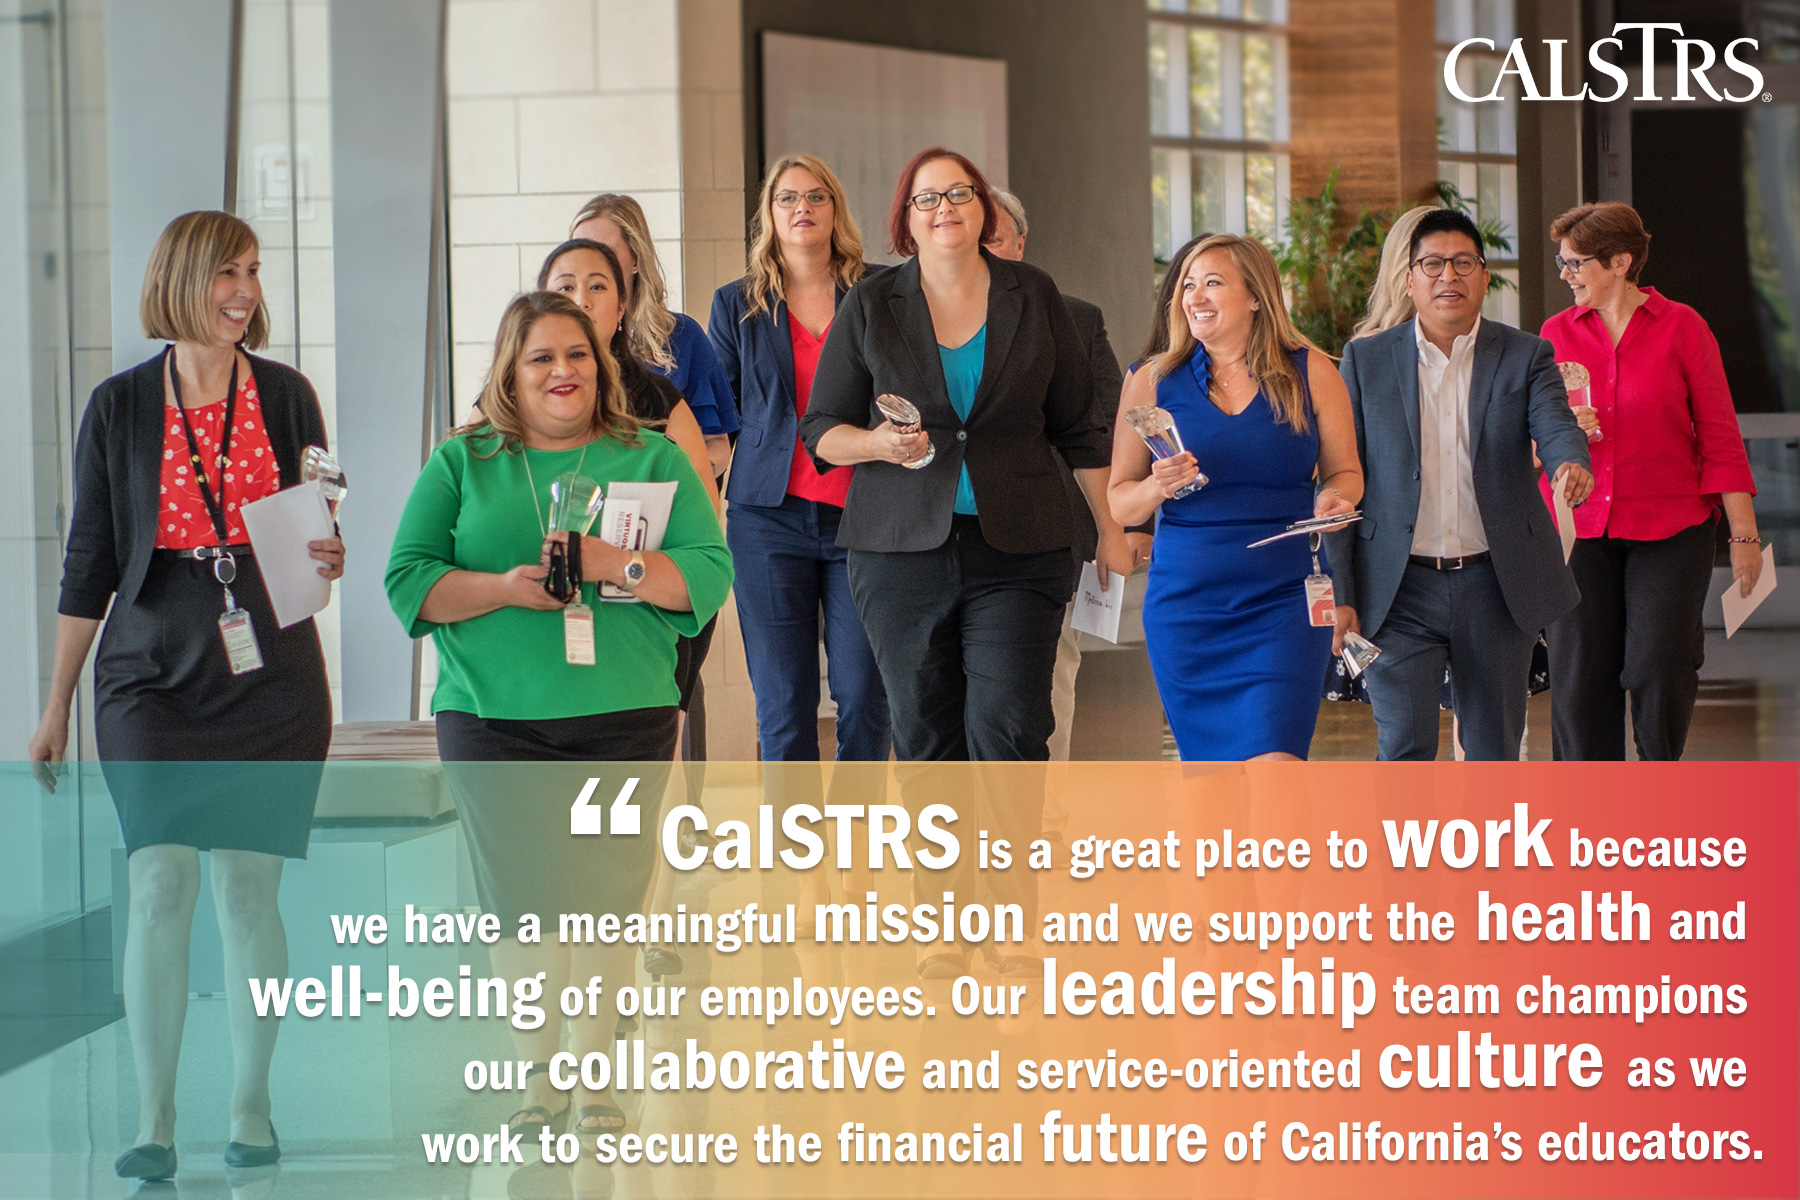 Learn more about CalSTRS at culture on LinkedIn